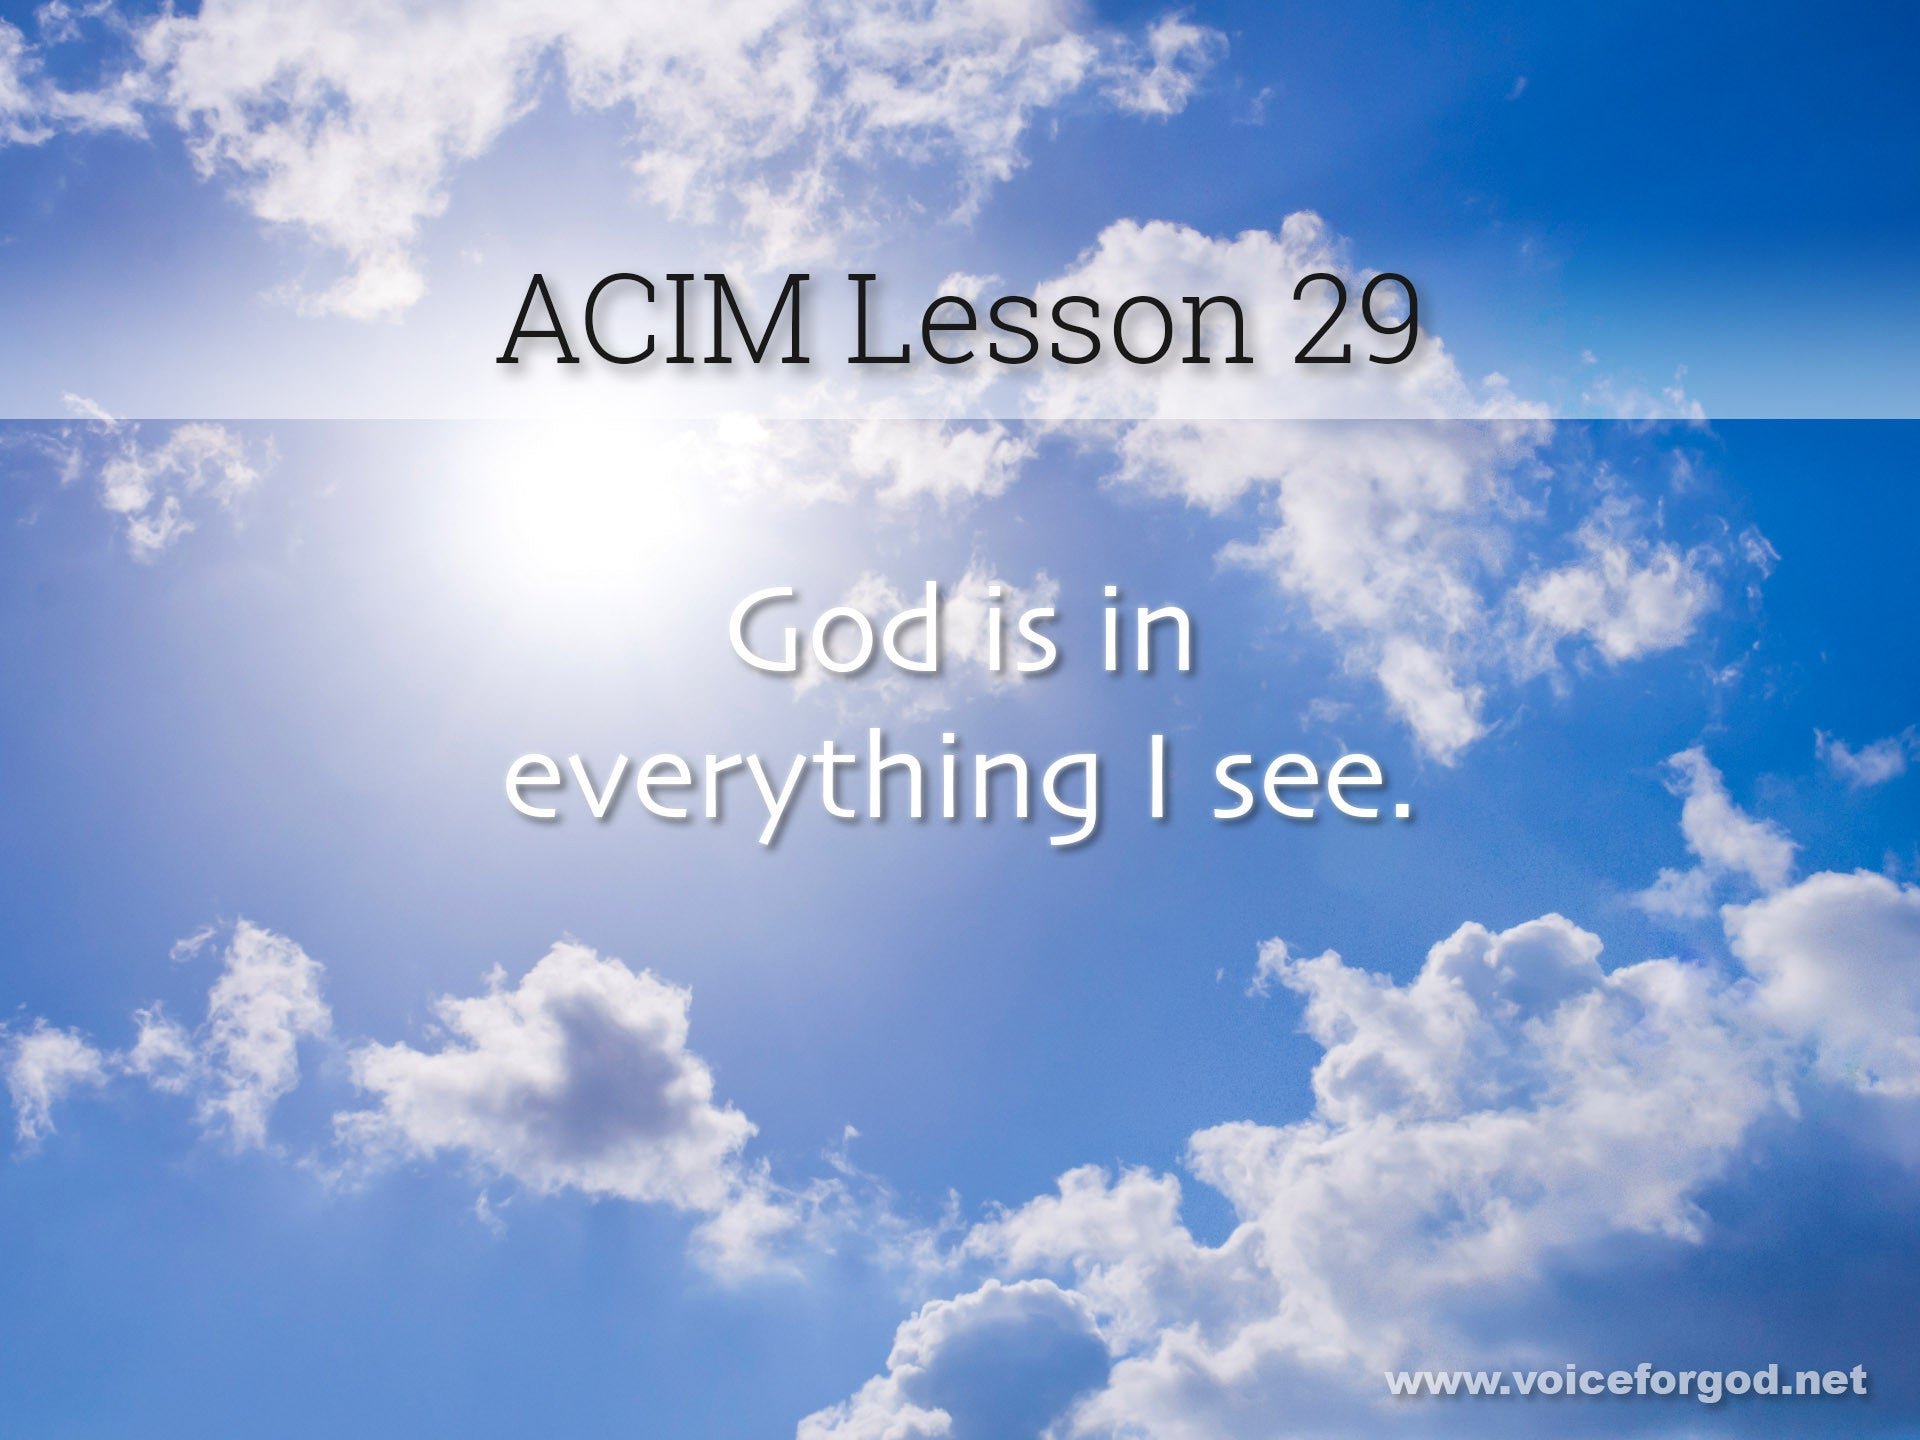 ACIM Lesson 29 - A Course in Miracles Workbook Lesson 29